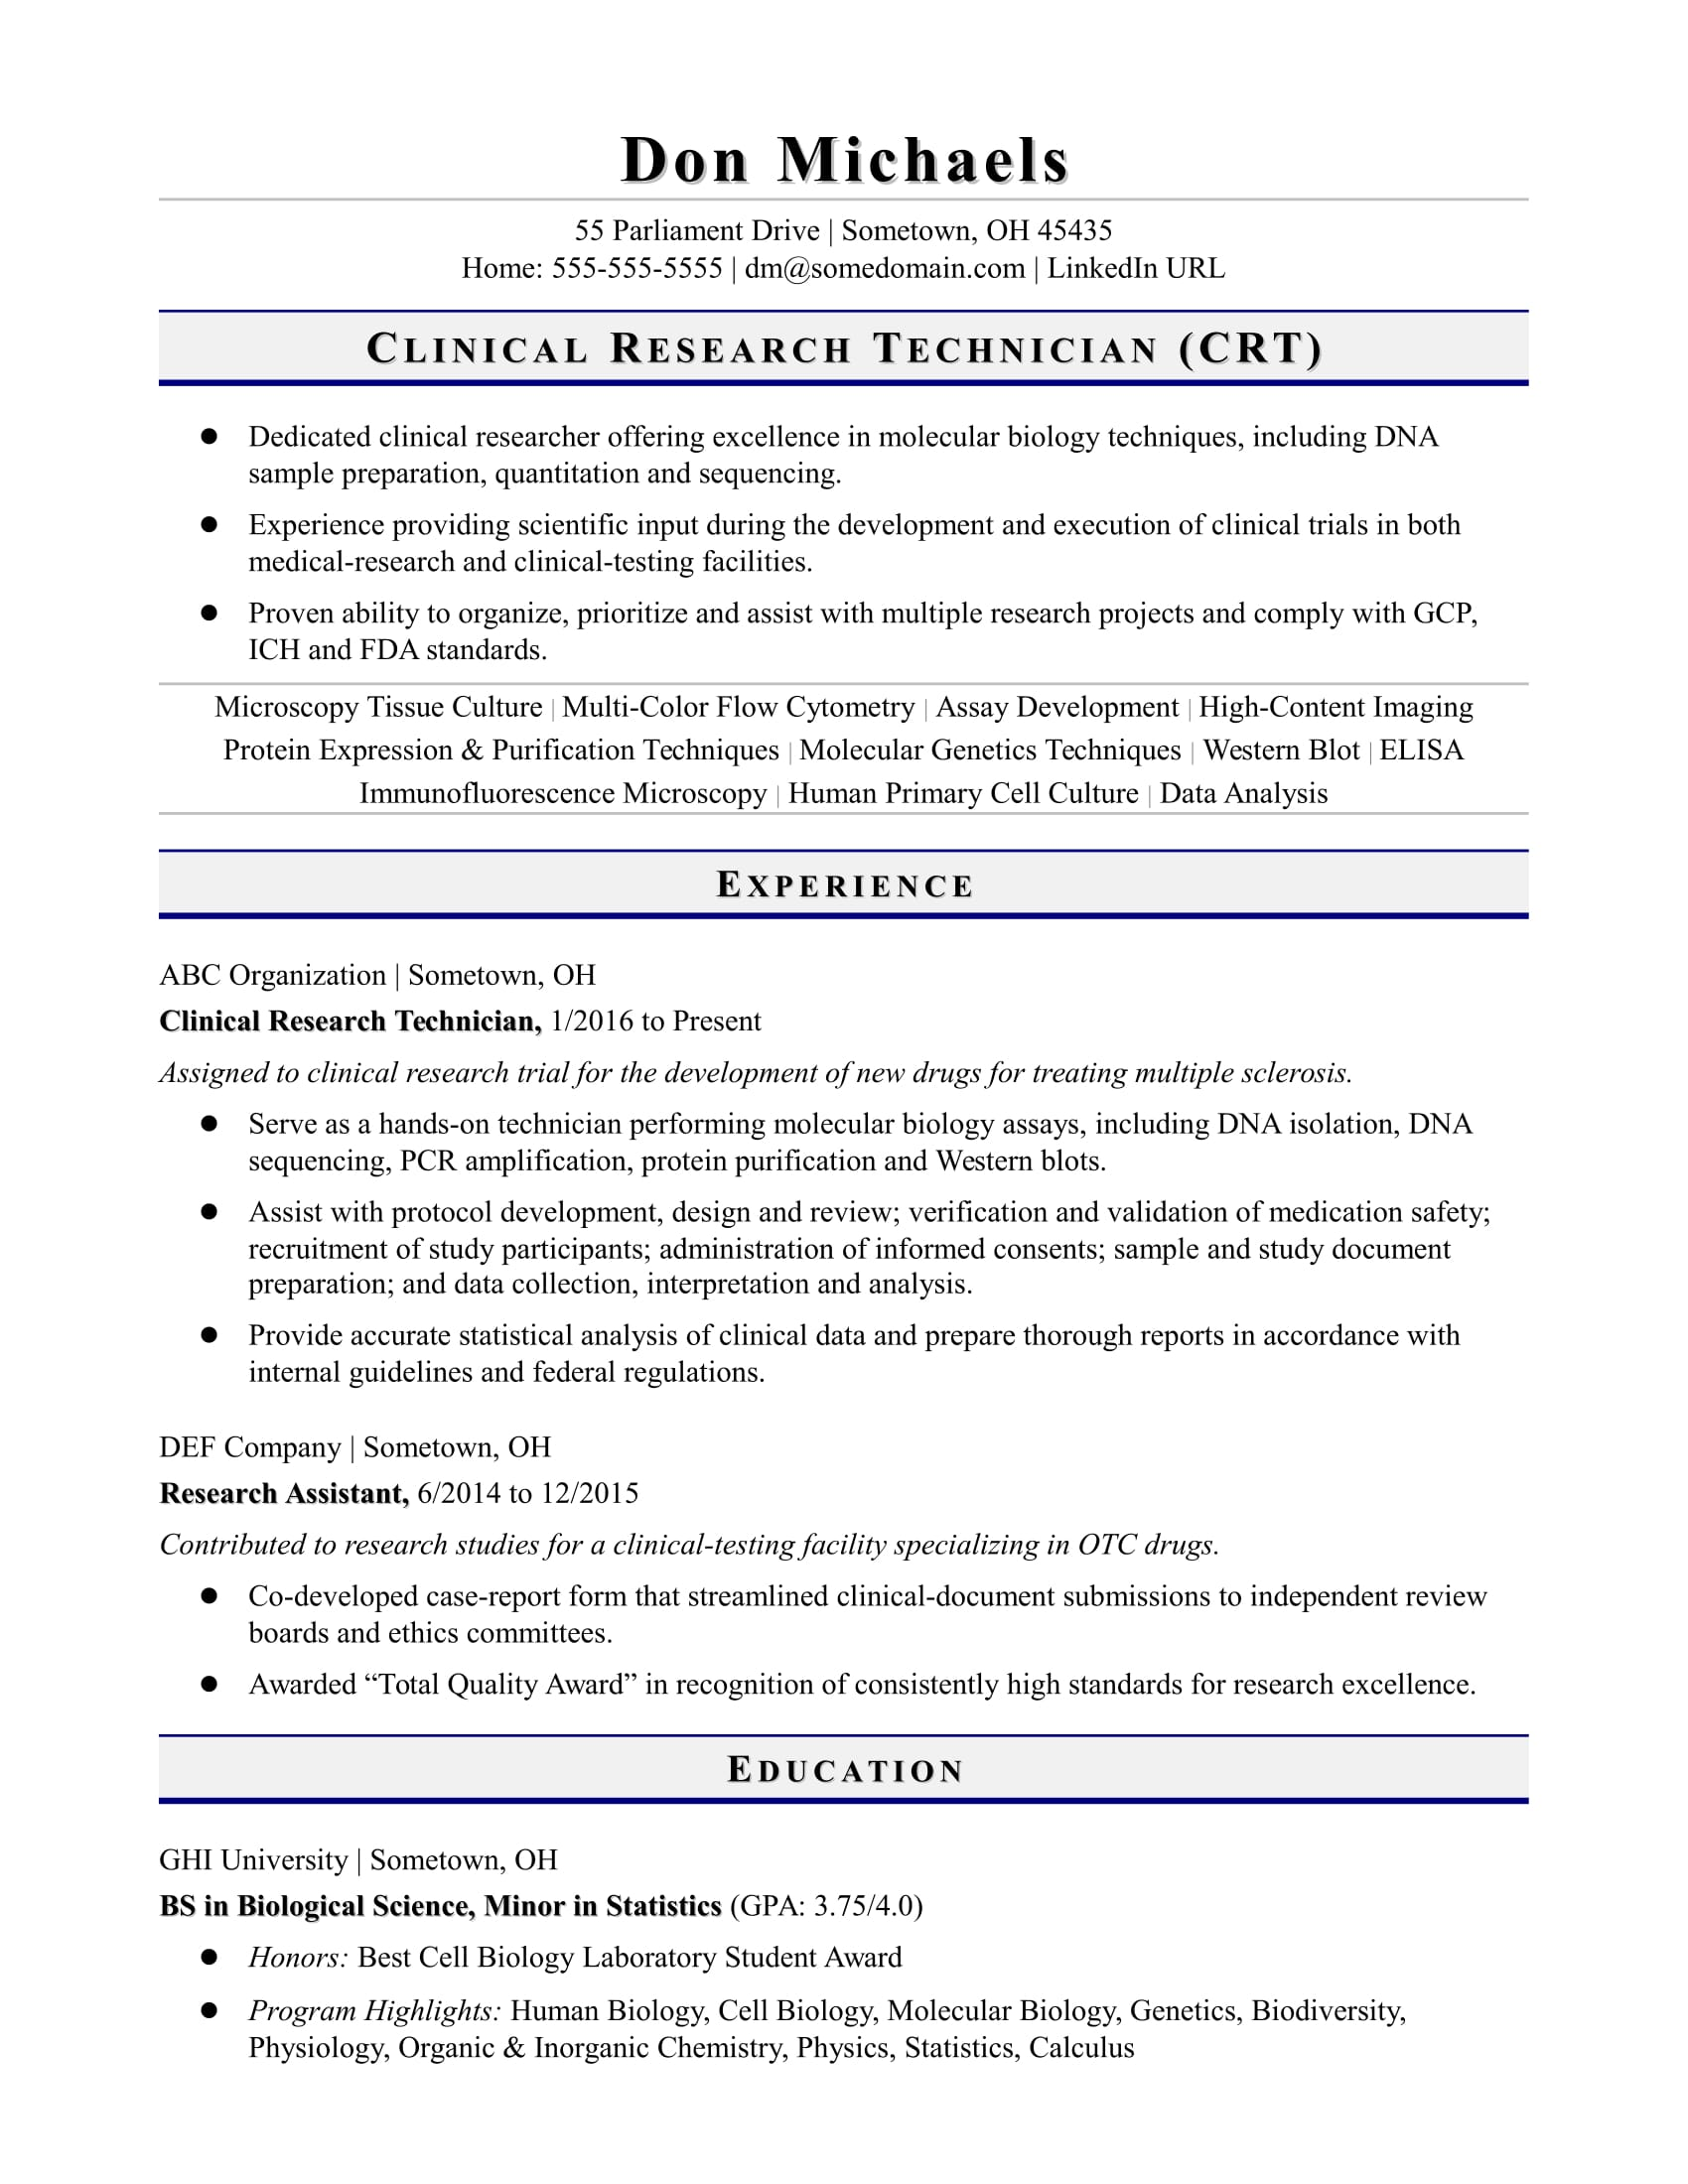 clinical research assistant cv sample